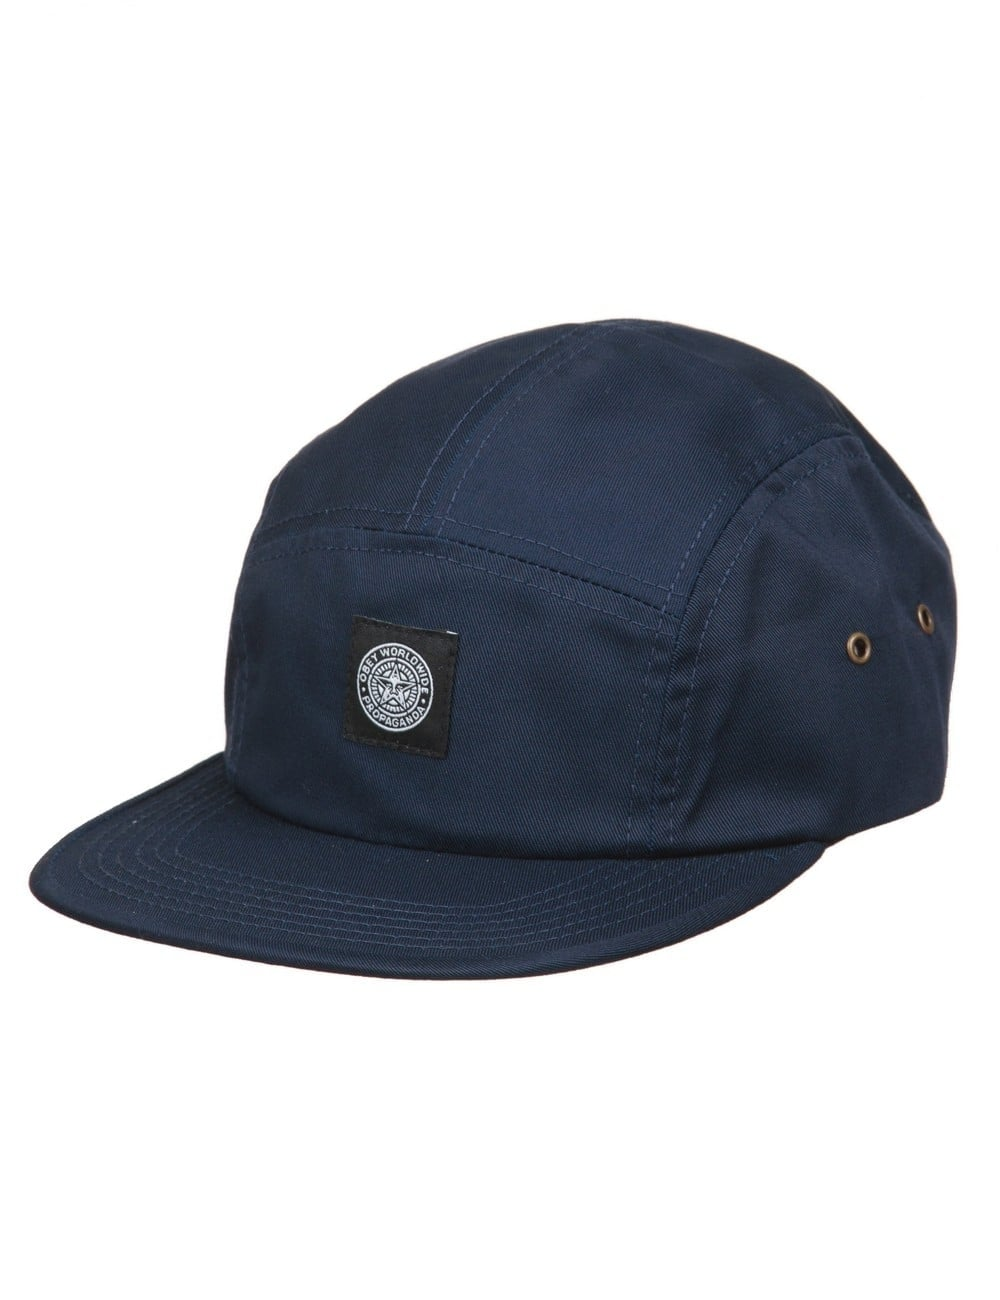 a0abb507bb53c Obey Clothing Worldwide Seal 5 Panel Hat - Navy - Accessories from ...